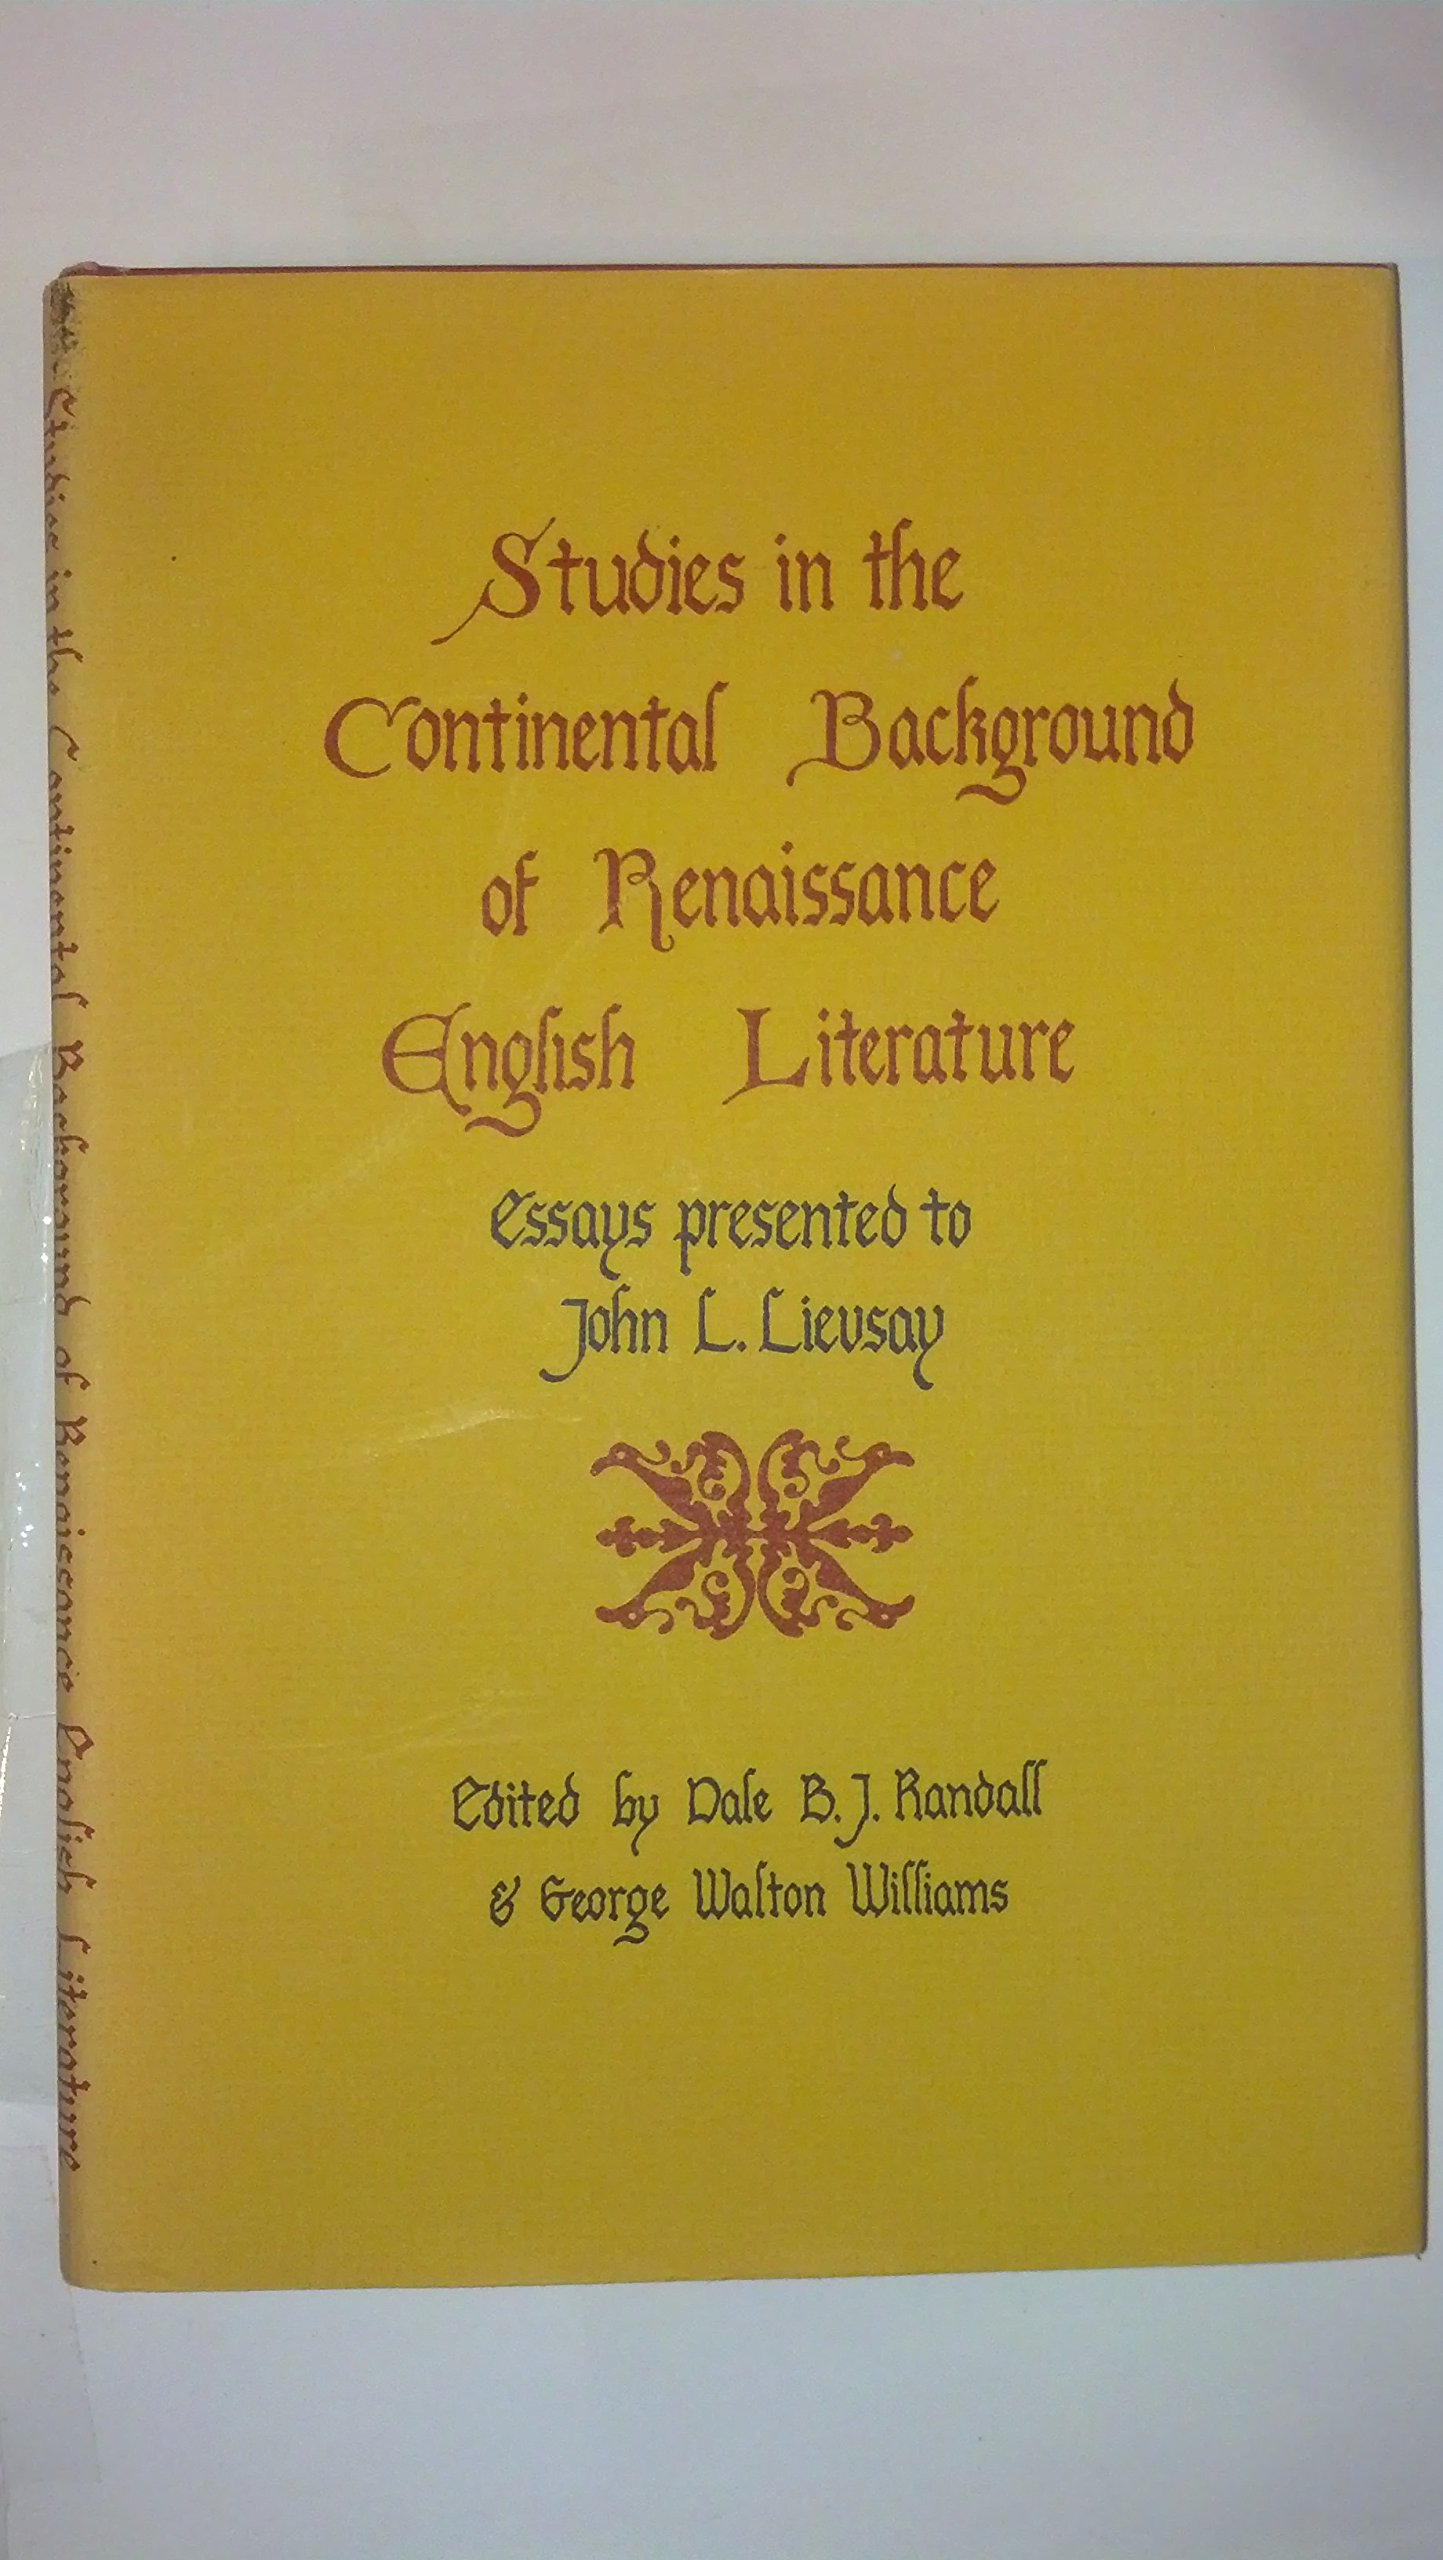 studies in the continental background of renaissance english  studies in the continental background of renaissance english literature  essays presented to john l lievsay hardcover